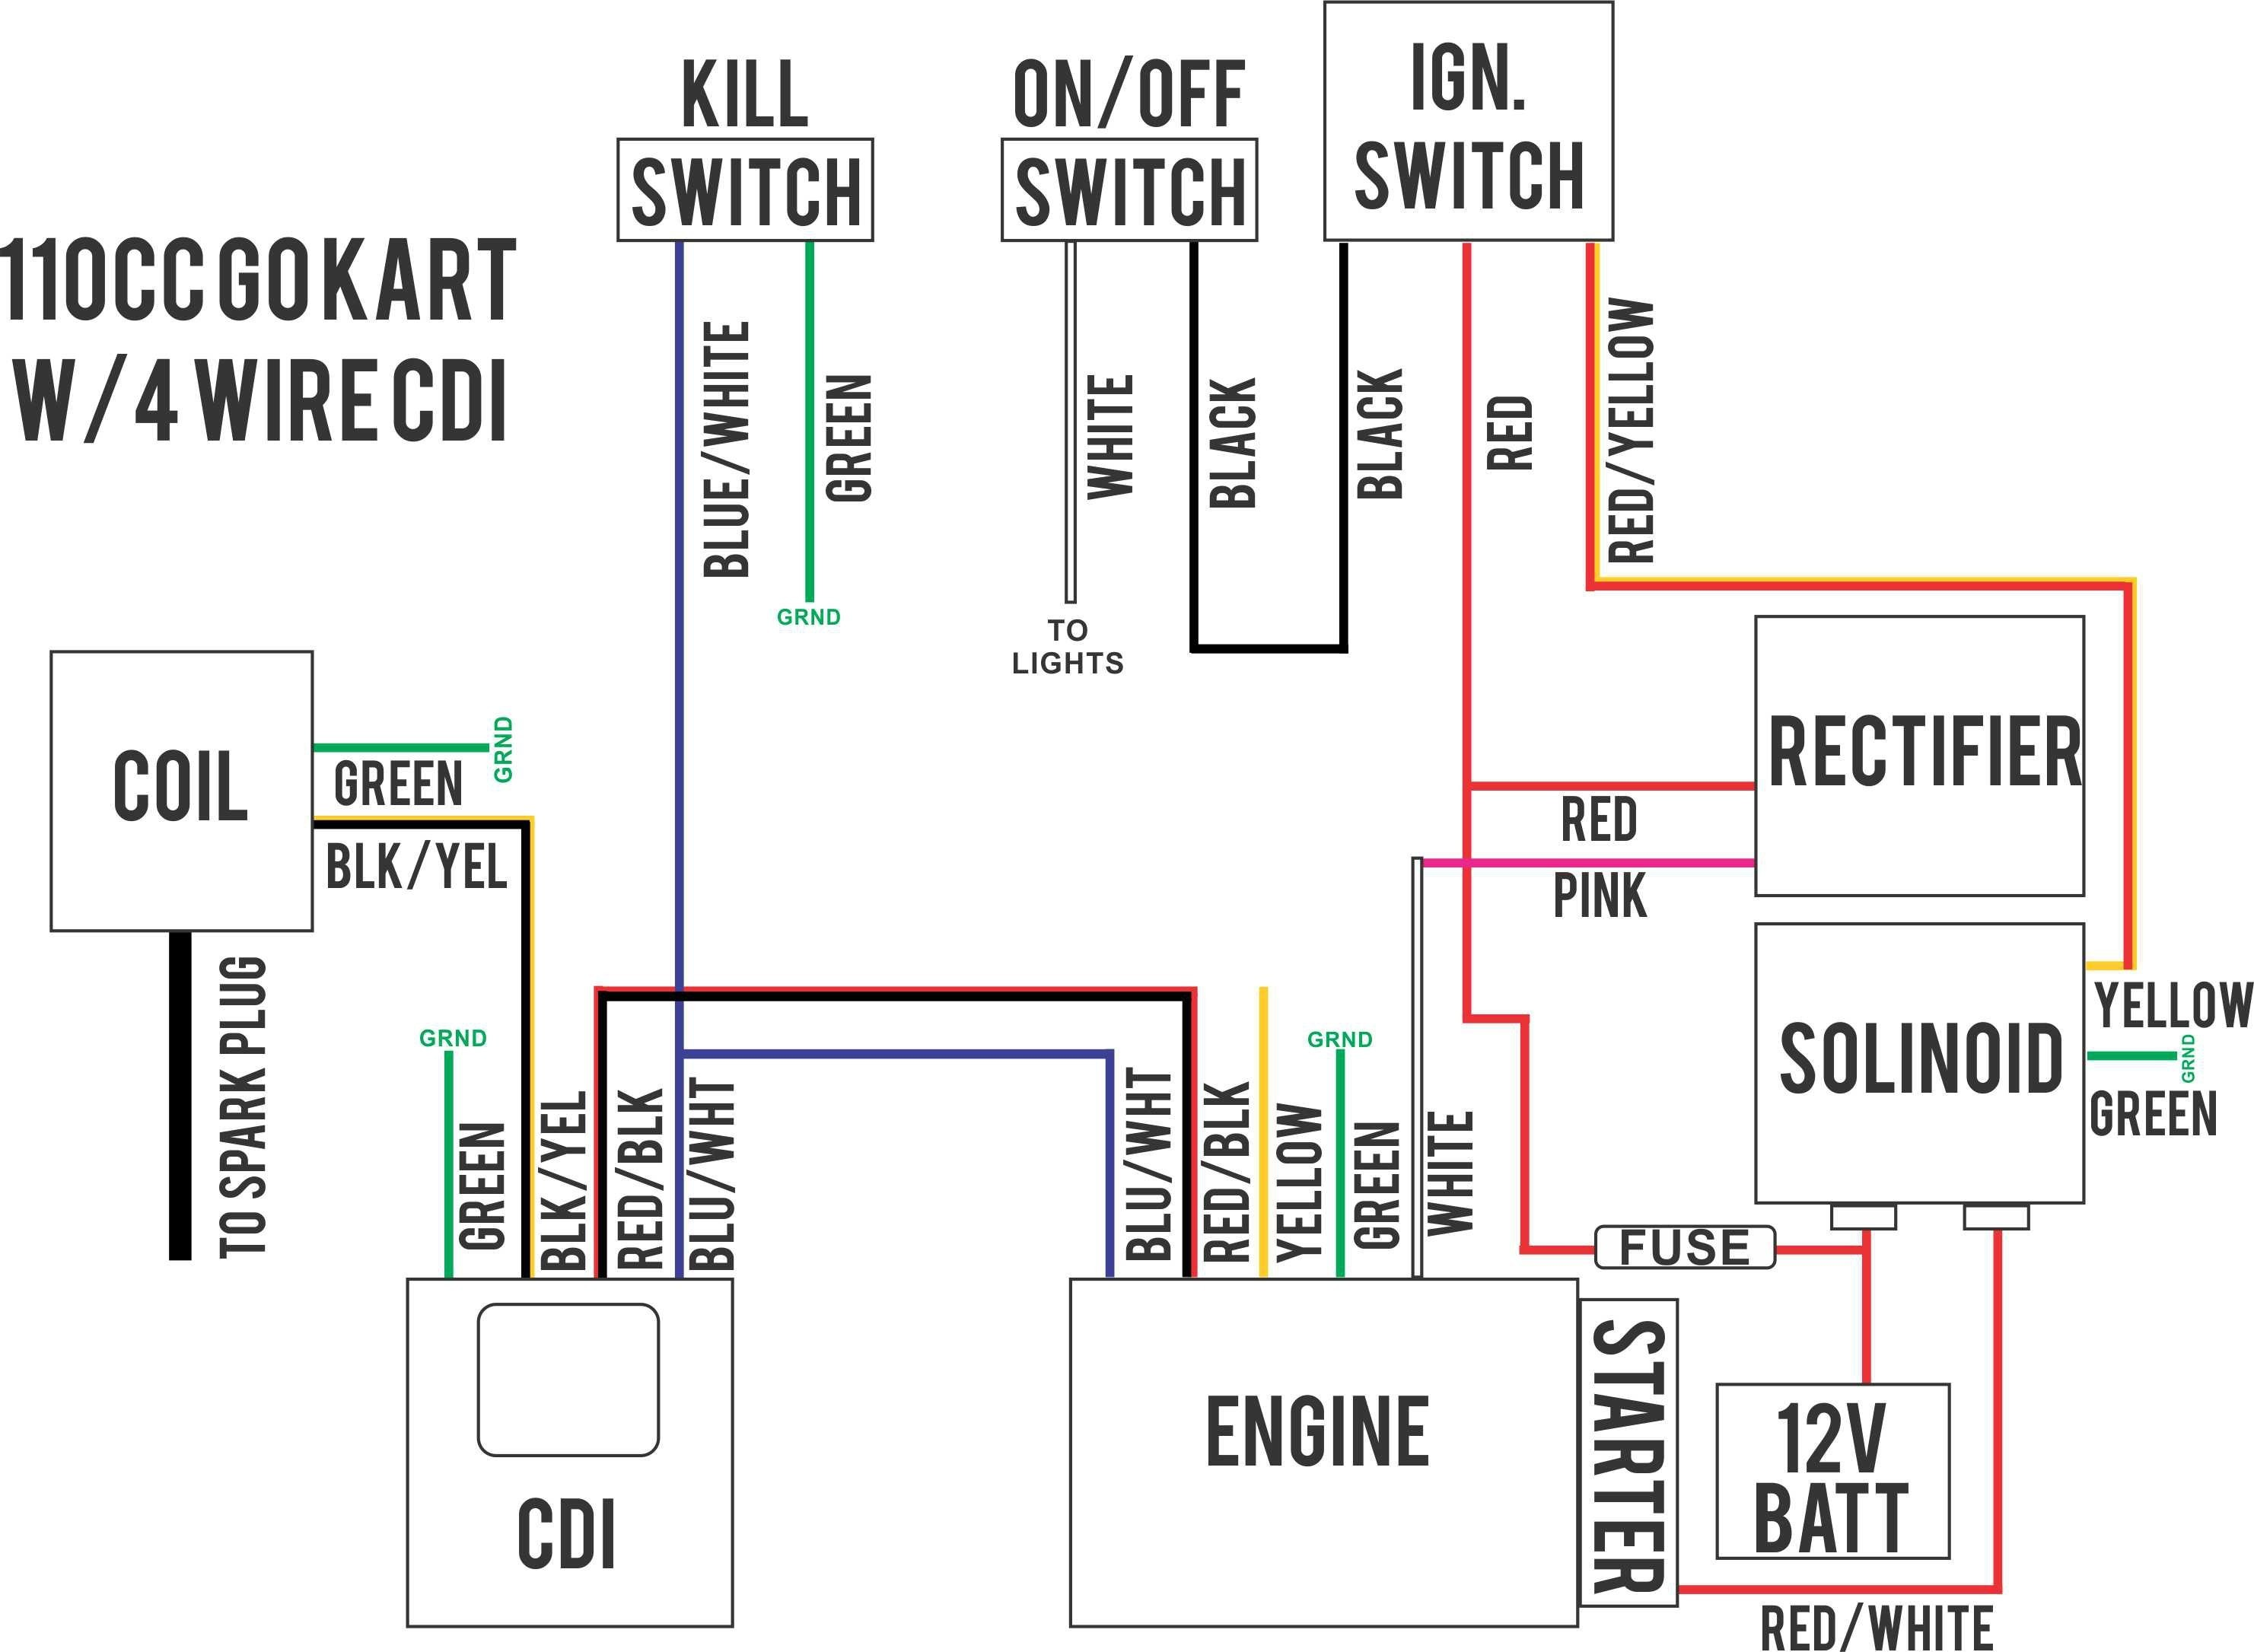 Wiring Diagram for Ignition Switch Save Basic Ignition Wiring Diagram Ignition Coil Wiring Diagram New Basic